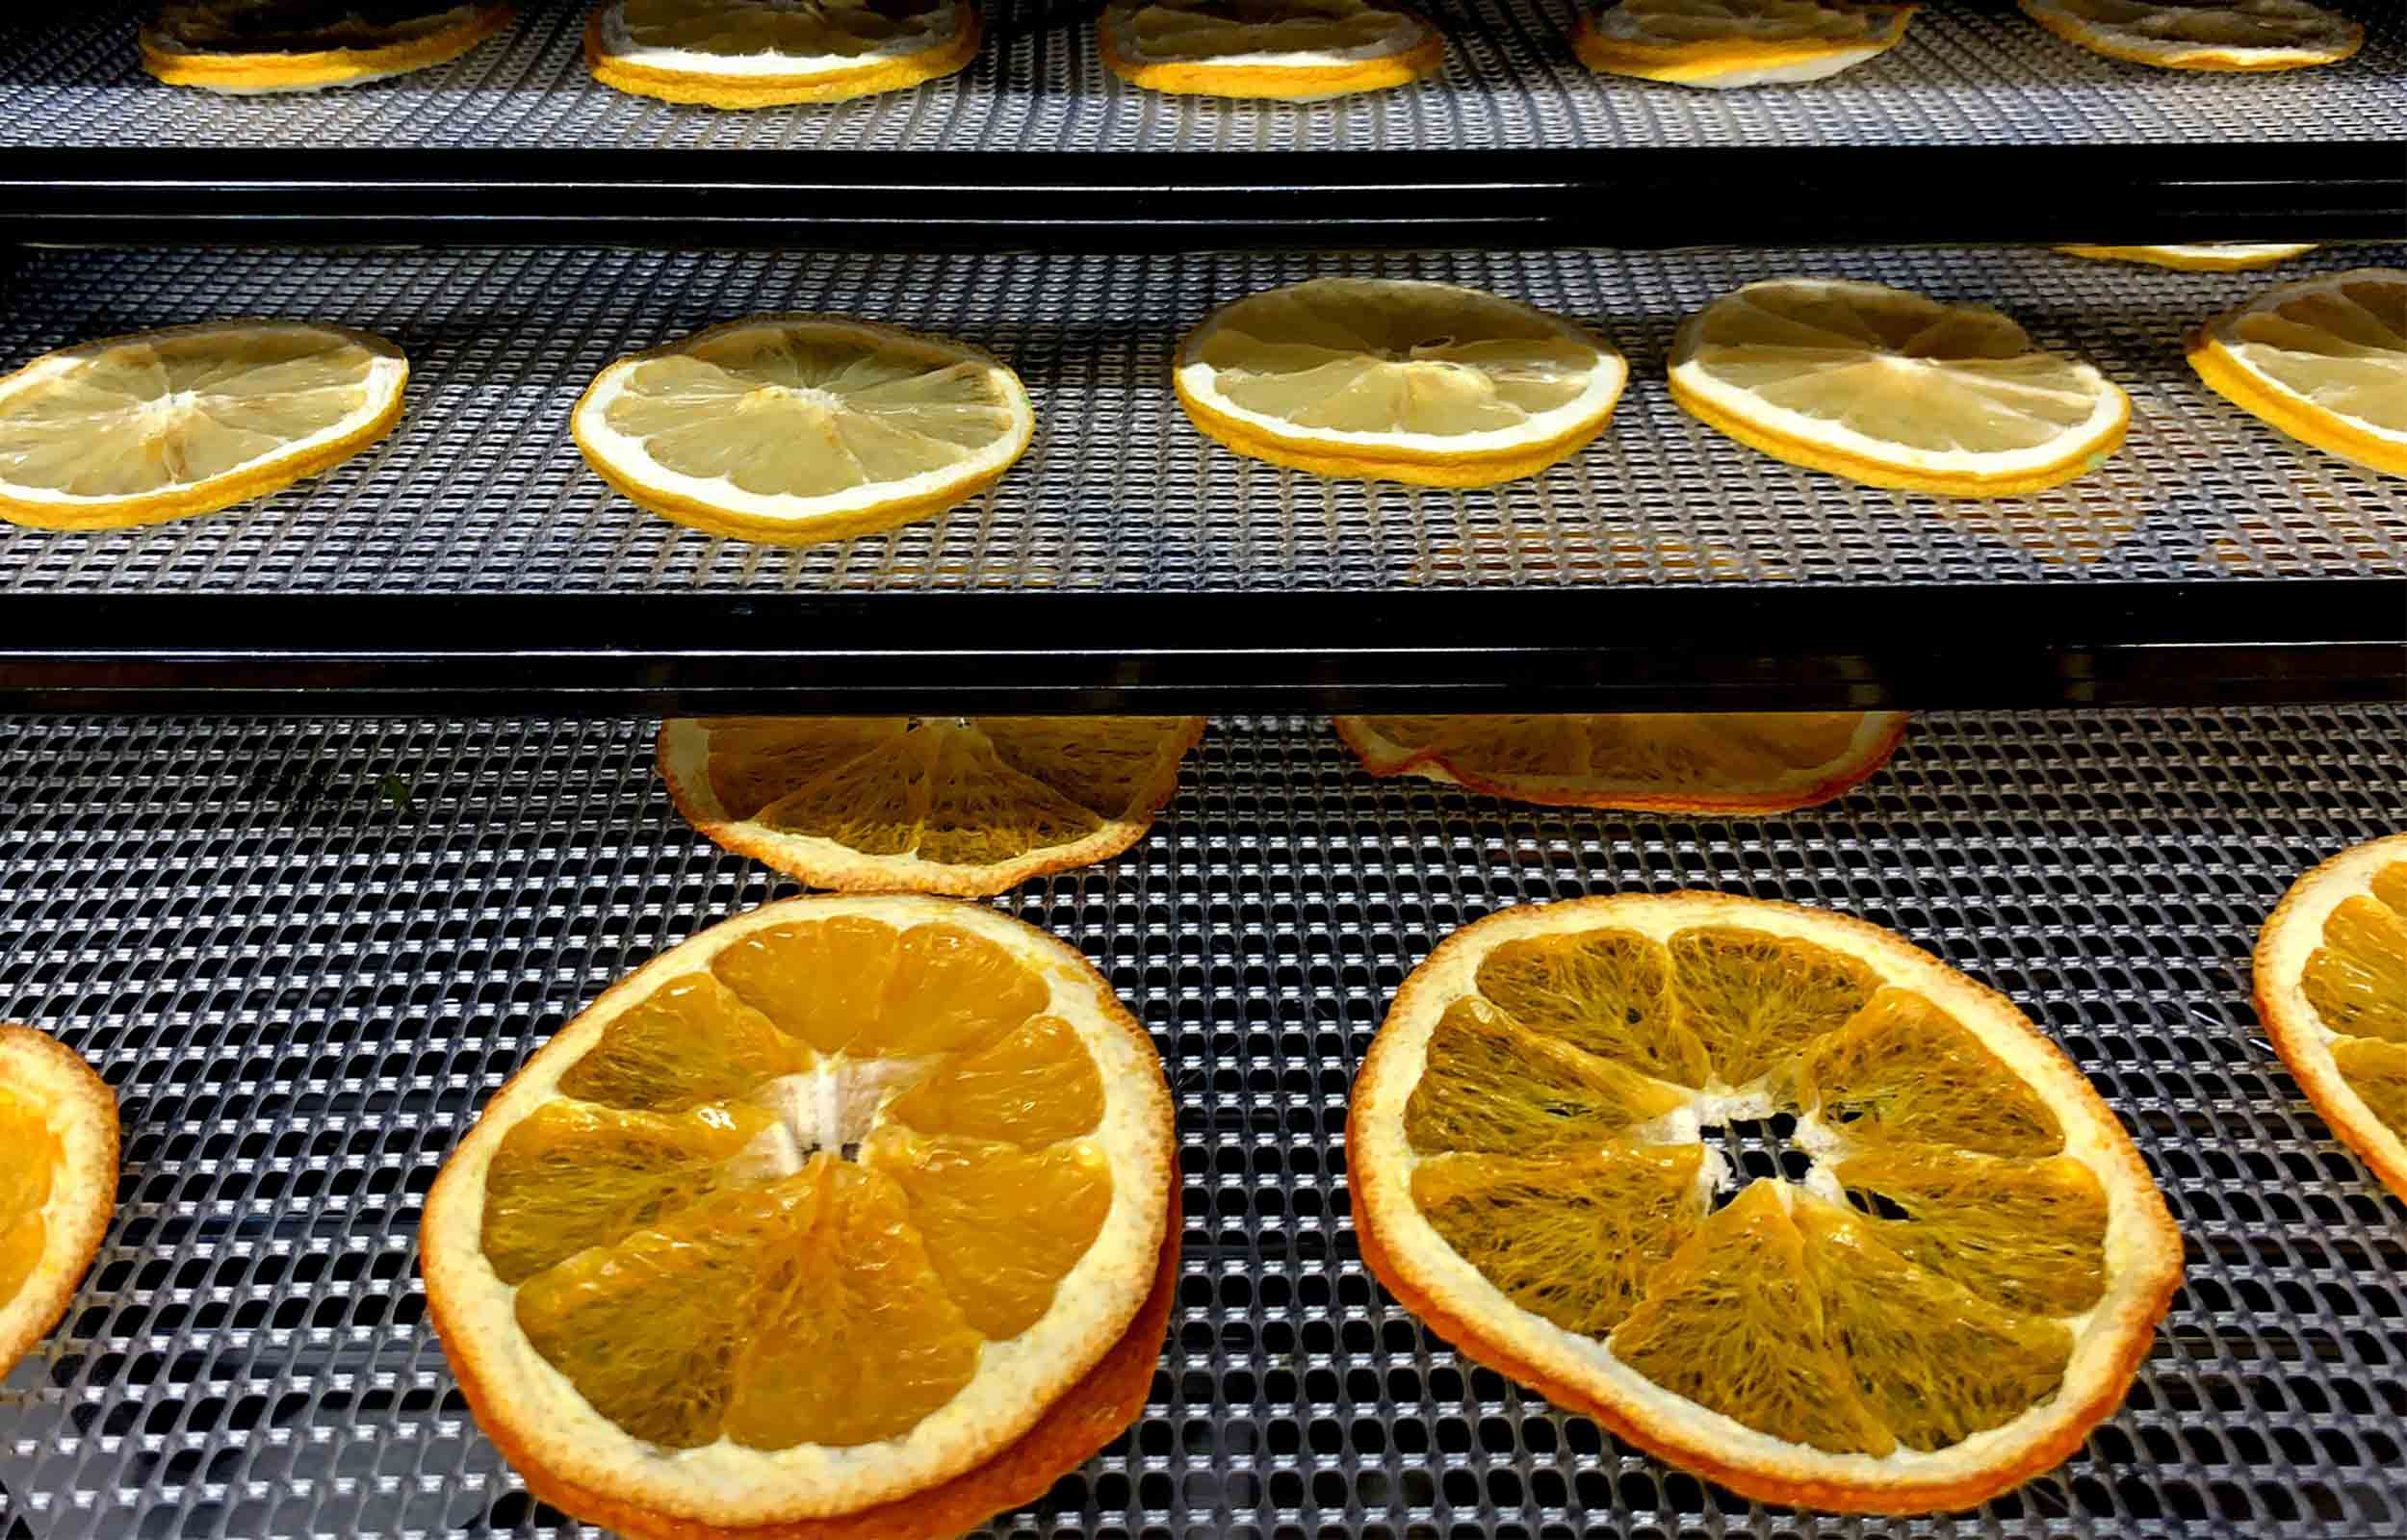 orange slices dehydrating